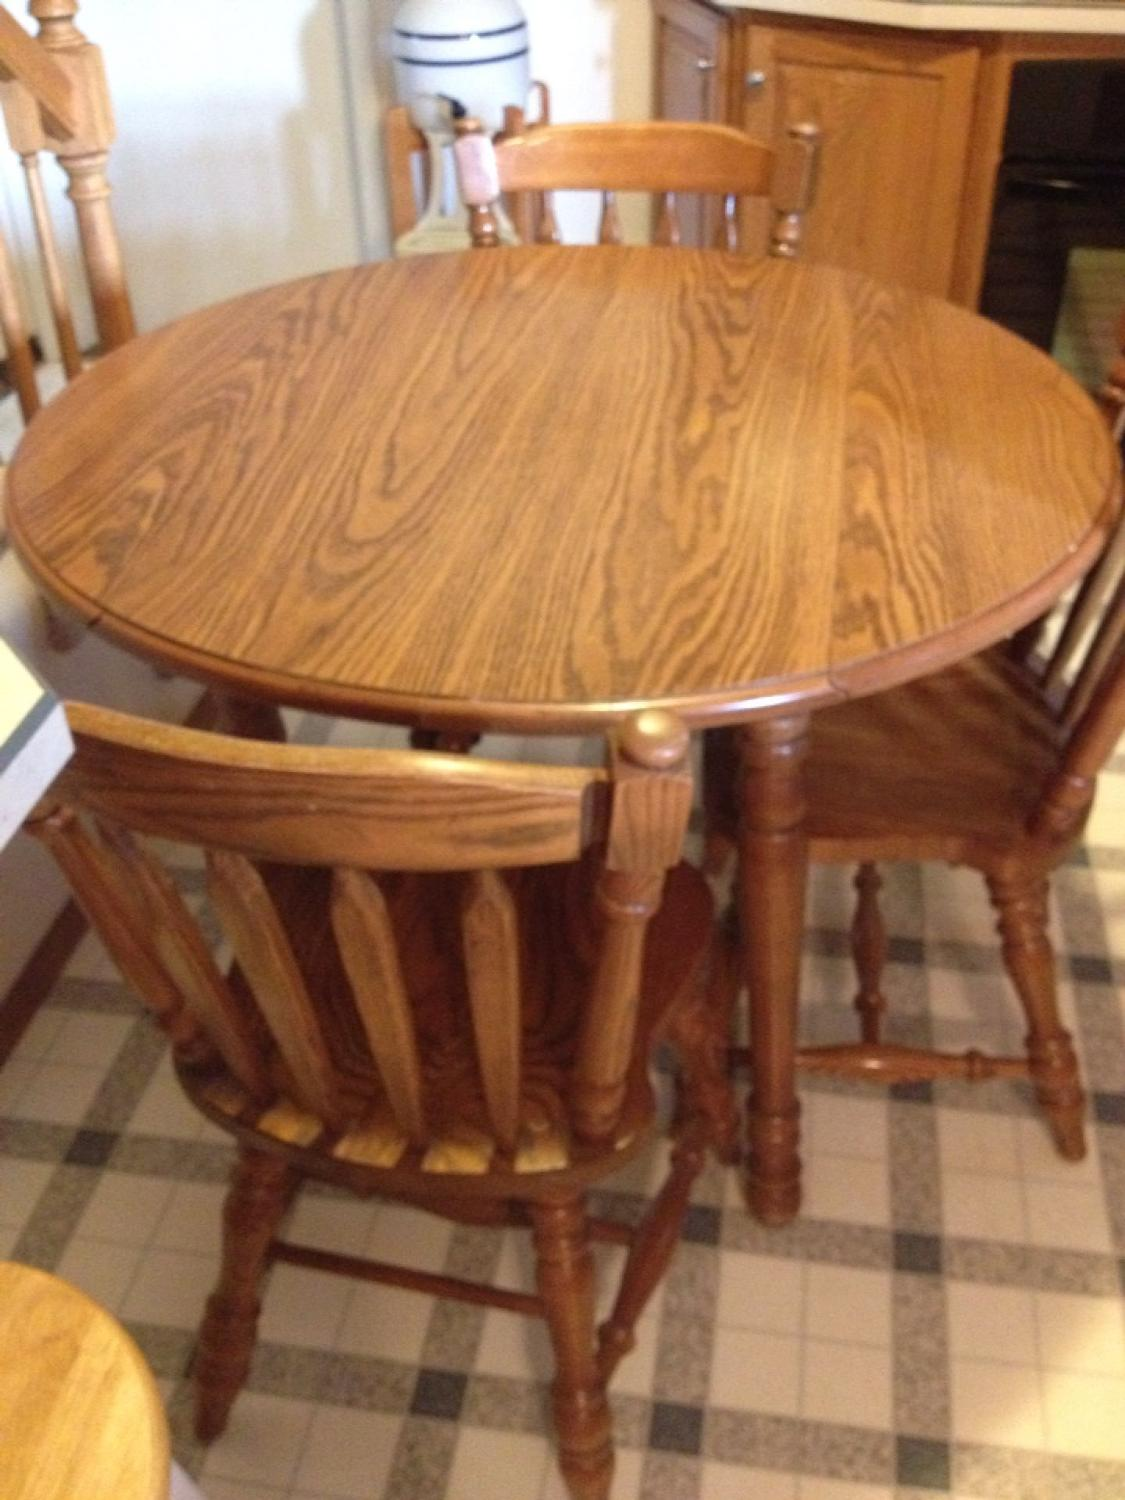 Best Virginia House Oak Table And Chairs For In Morton Illinois 2019